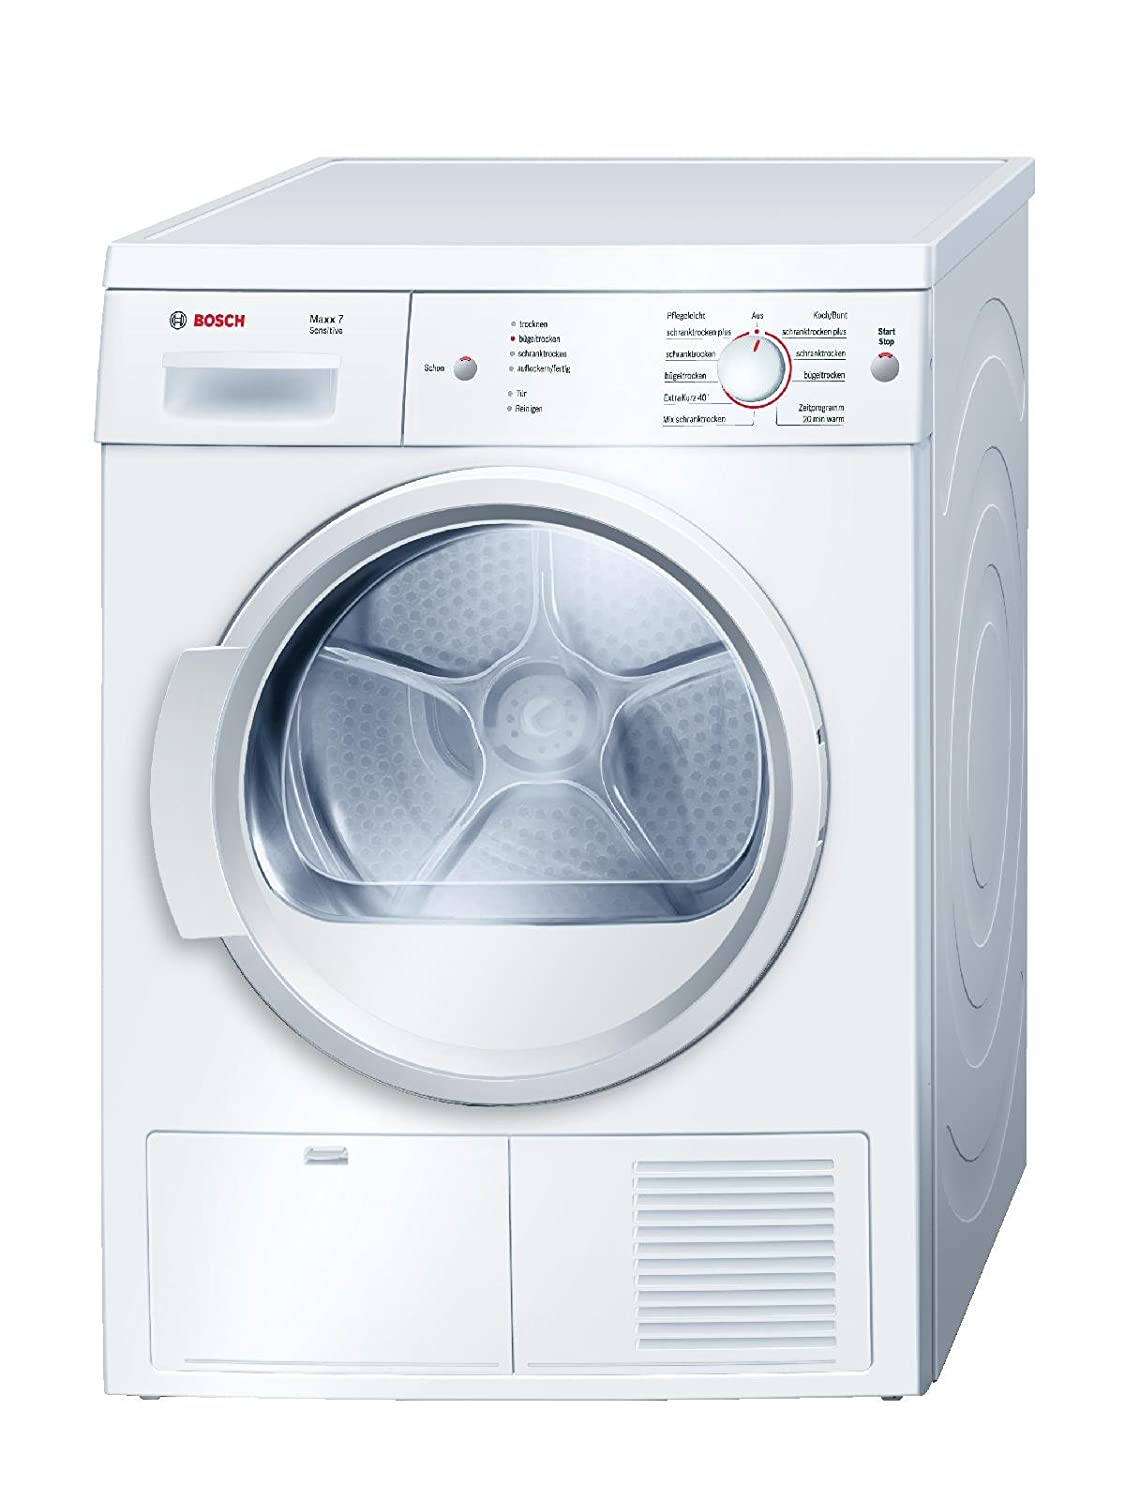 Bosch WTE86103 freestanding Front-load 7kg B White tumble dryer - tumble dryers (freestanding, Front-load, Condensation, B, White, B)